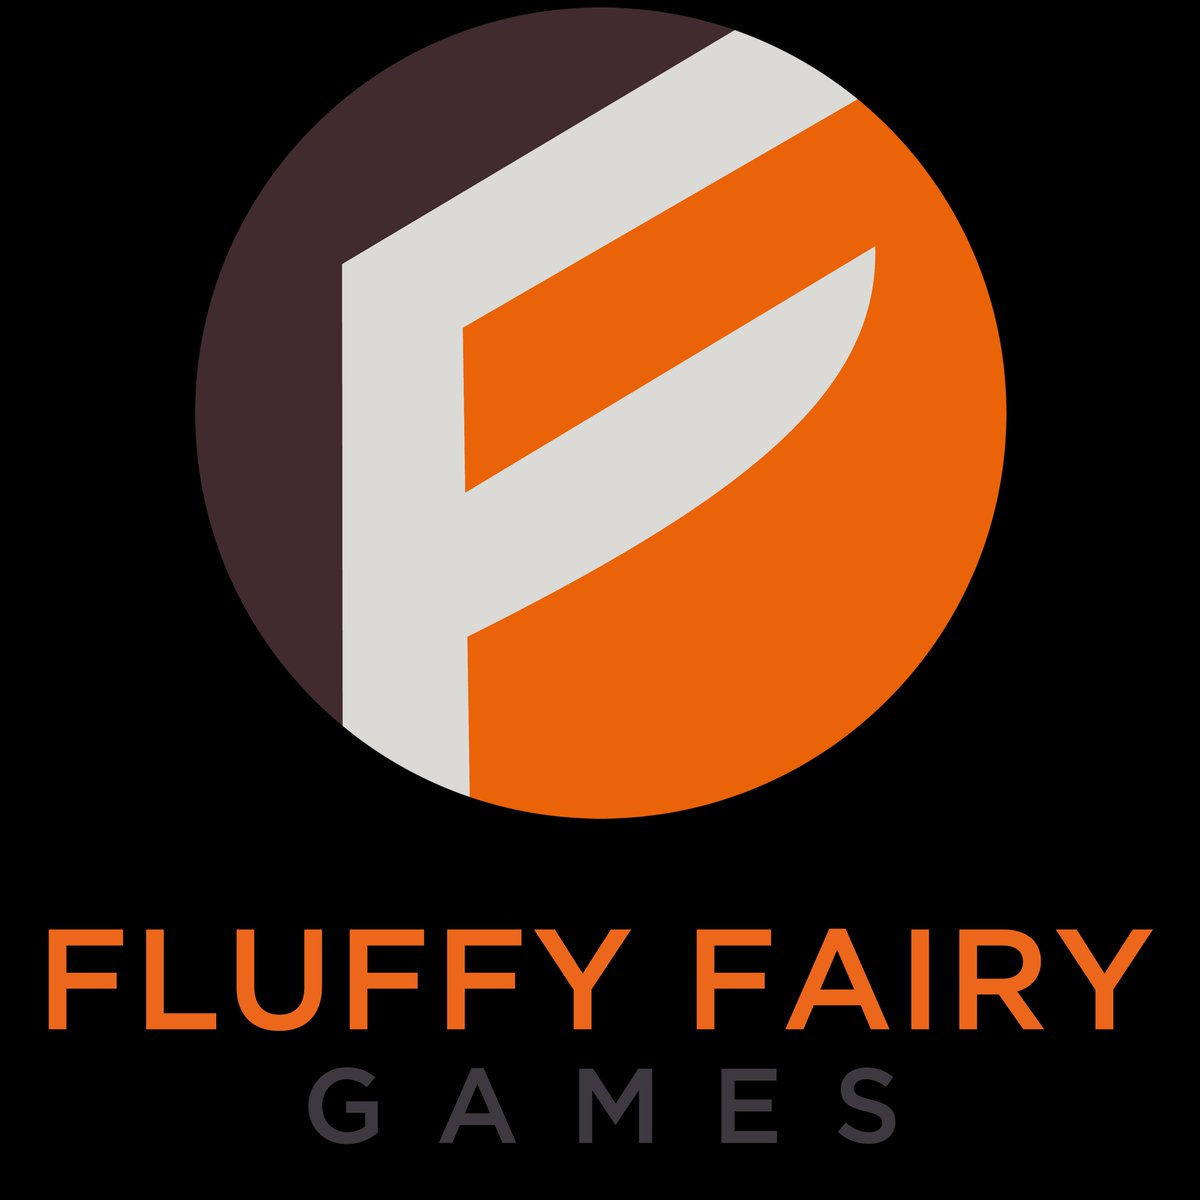 games career com gamescareer twitter gamejobs in fluffy fairy games is looking for a senior unity 3d developer in karlsruhe unity3d bit ly 2oikjqv pic com ygpnmkbmy4